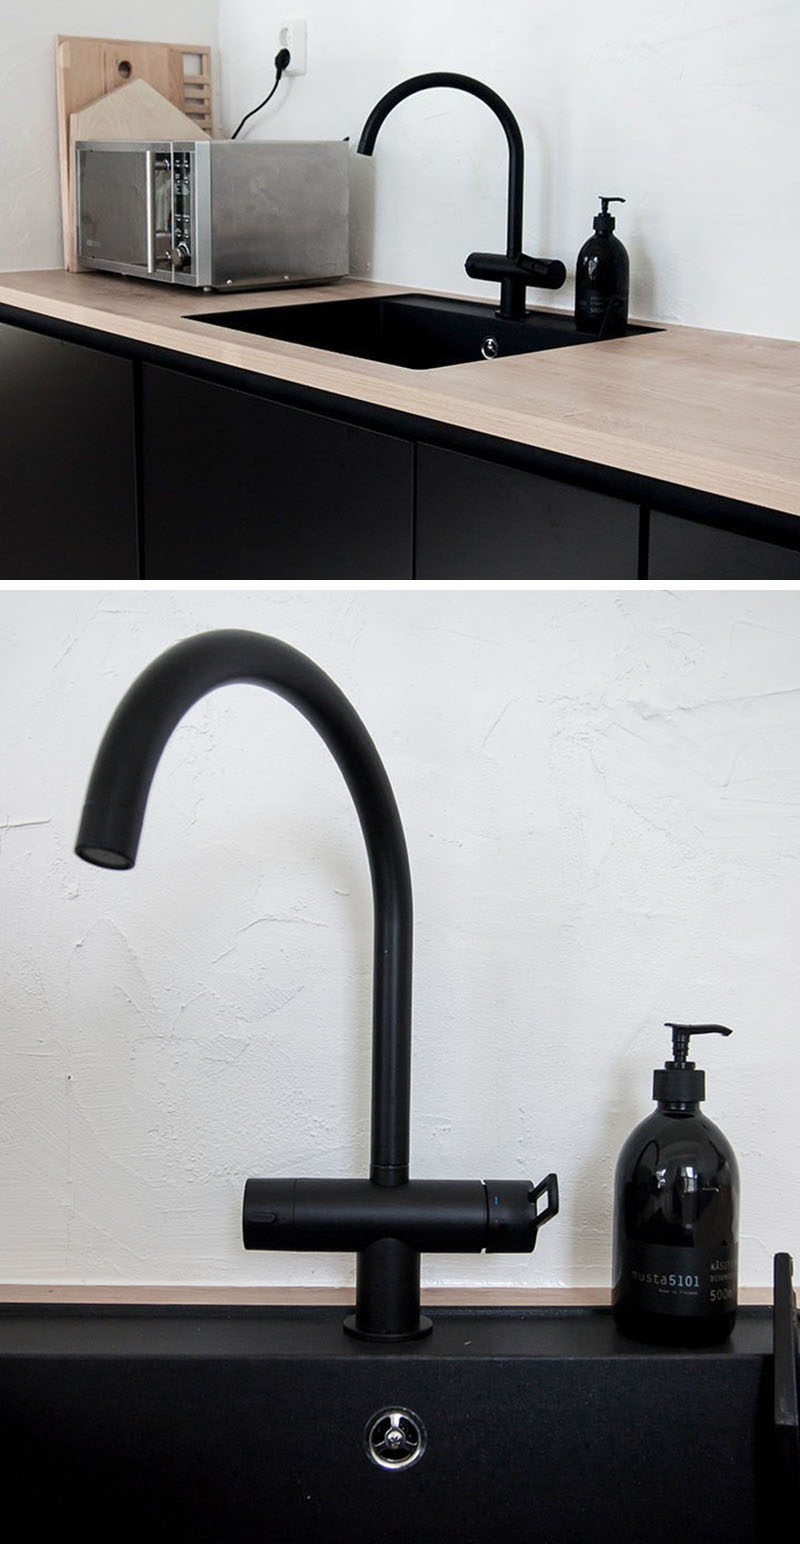 11 Ways To Introduce Black Into Your Kitchen // A black sink can tie together all the other elements of black and make for a cohesive, edgy look.